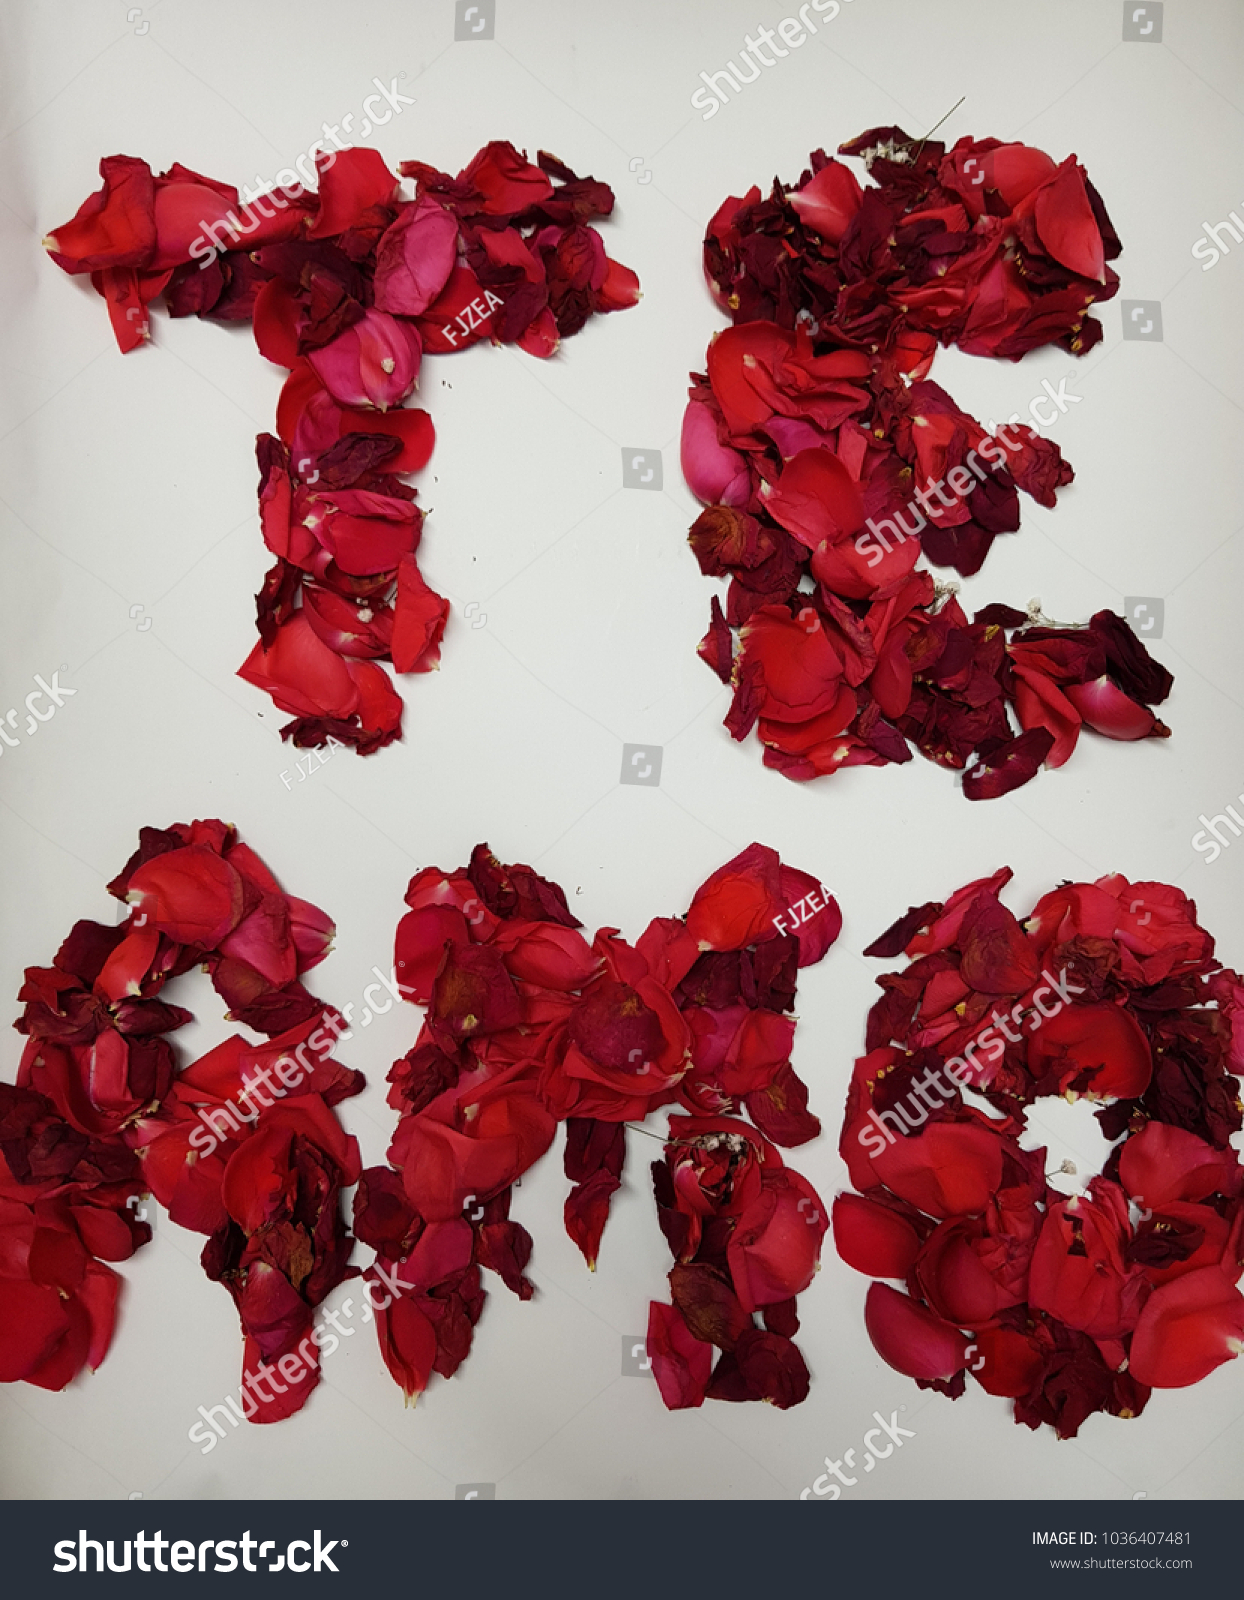 Message love spanish te amo formed stock photo royalty free message of love in spanish te amo formed with red rose petals background izmirmasajfo